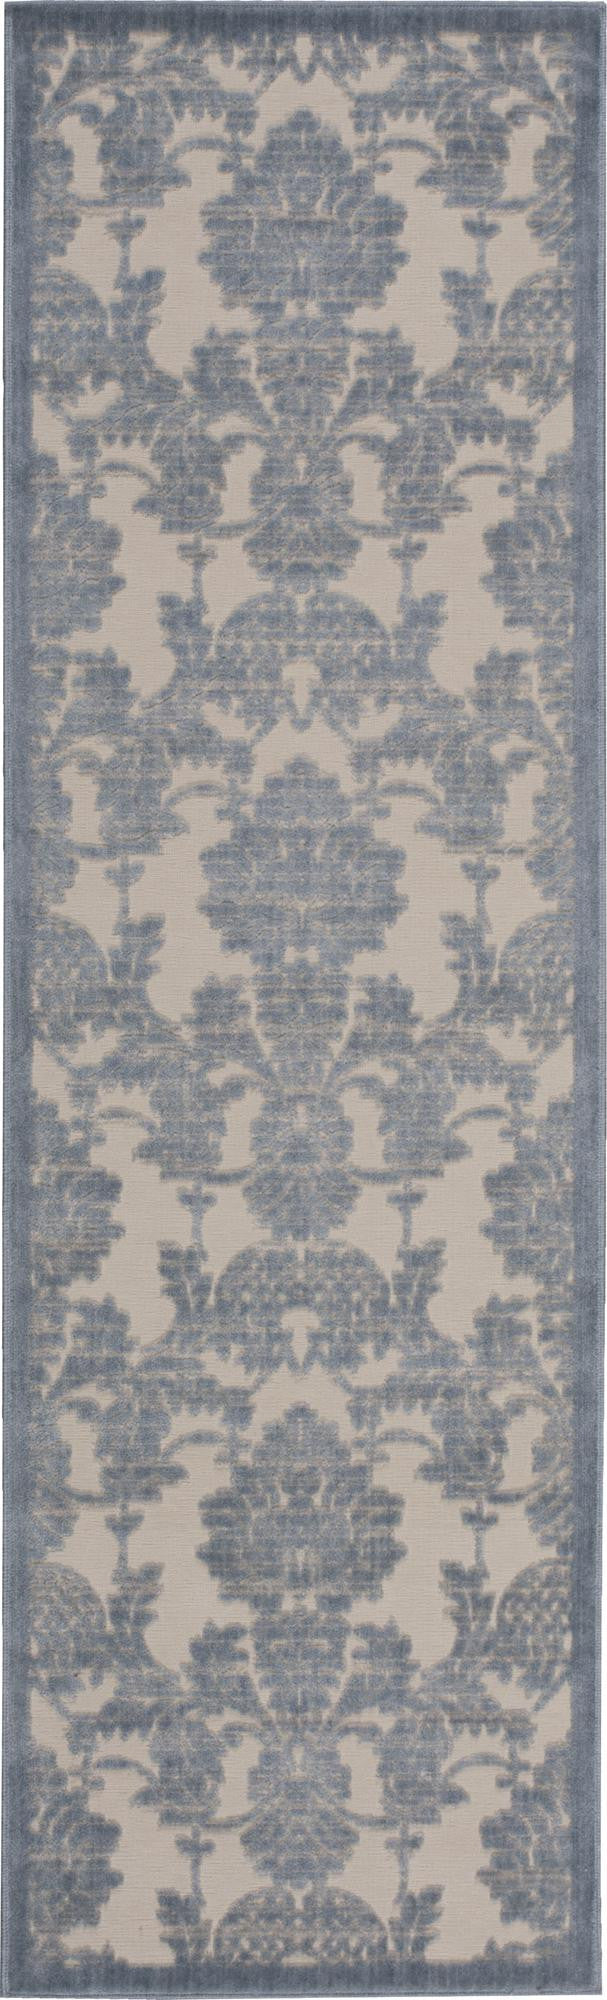 Nourison Graphic Illusions Ivory/Light Blue Area Rug GIL03 IVLTB